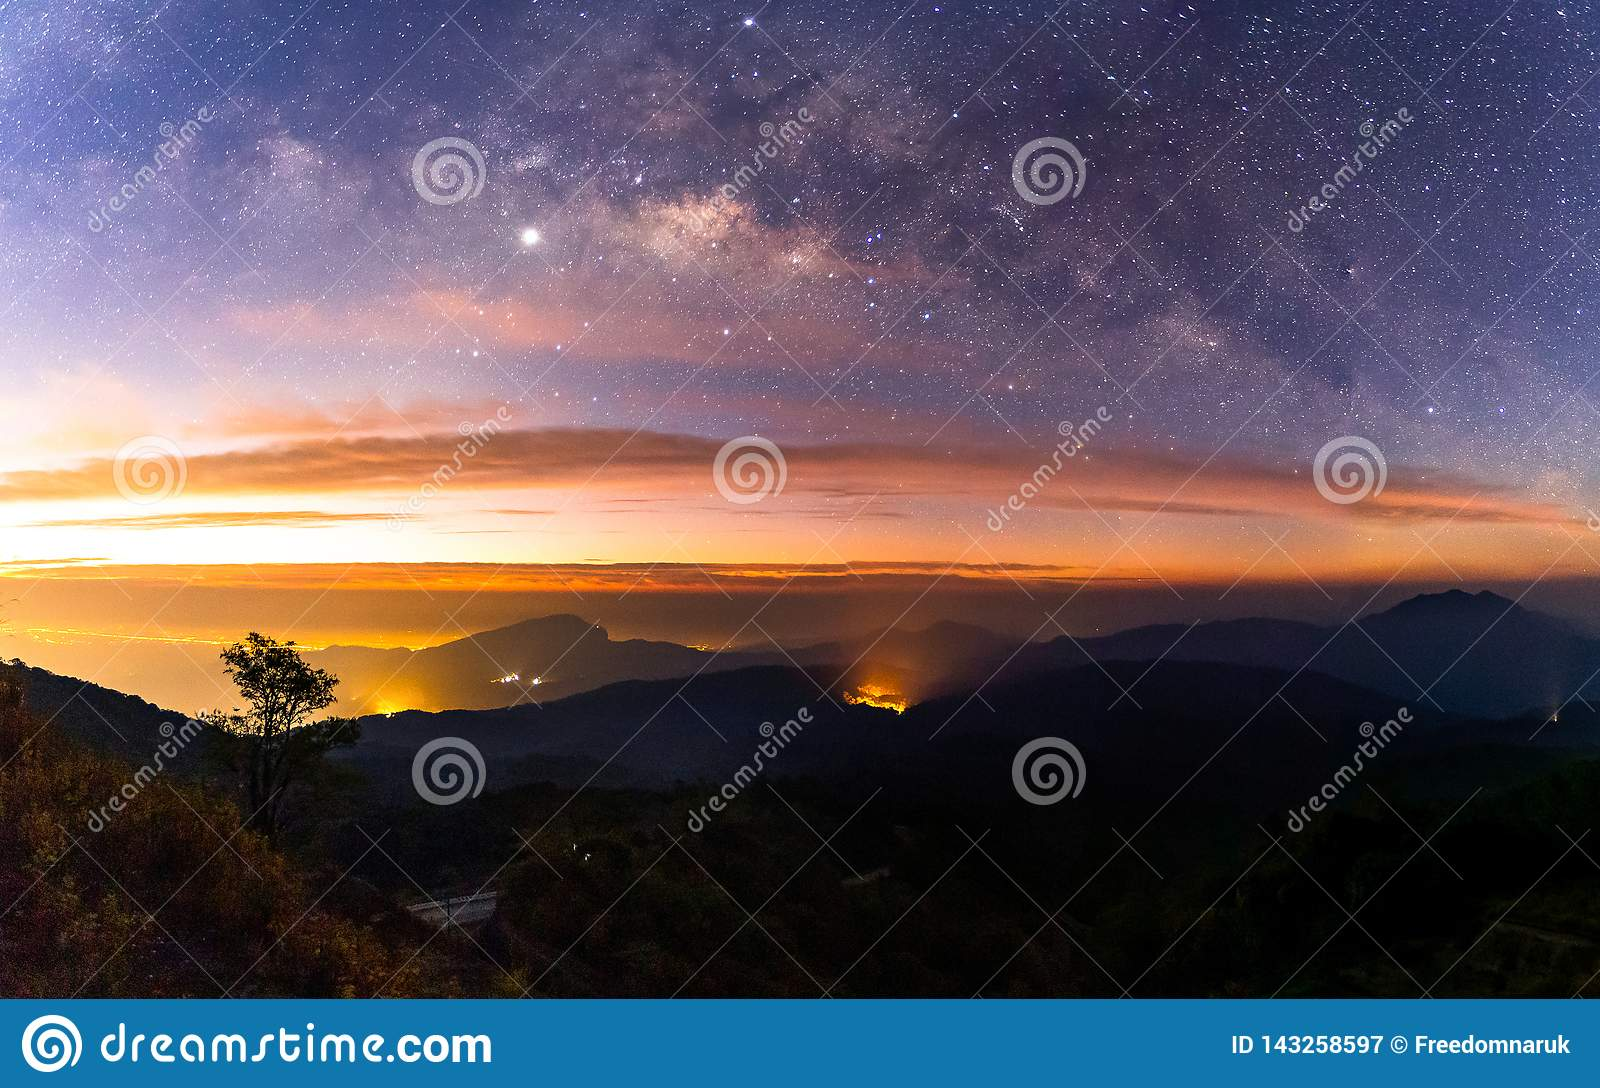 Panorama Milky Way Galaxy with light city at Doi inthanon Chiang mai, Thailand